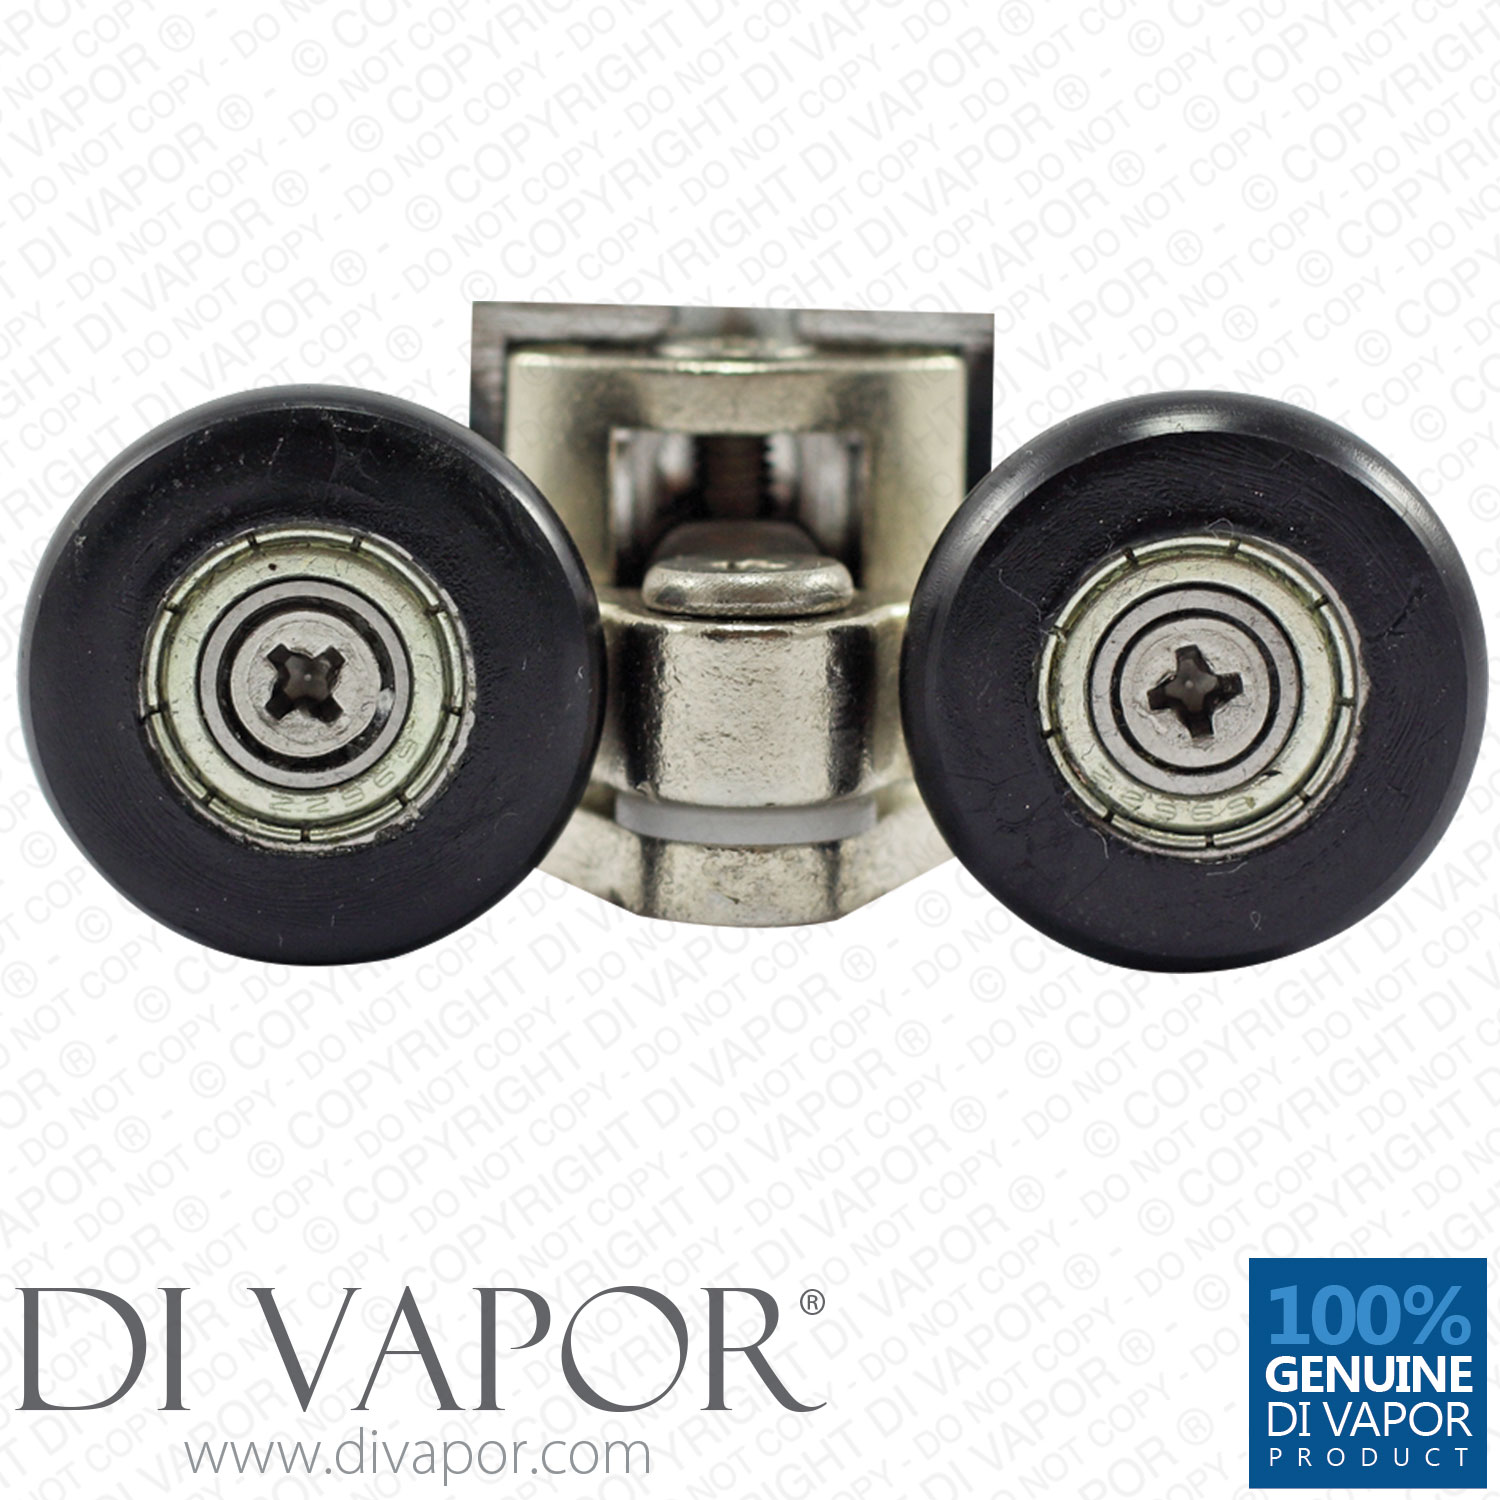 Di Vapor R 25mm Double Swivel Metal Shower Rollers